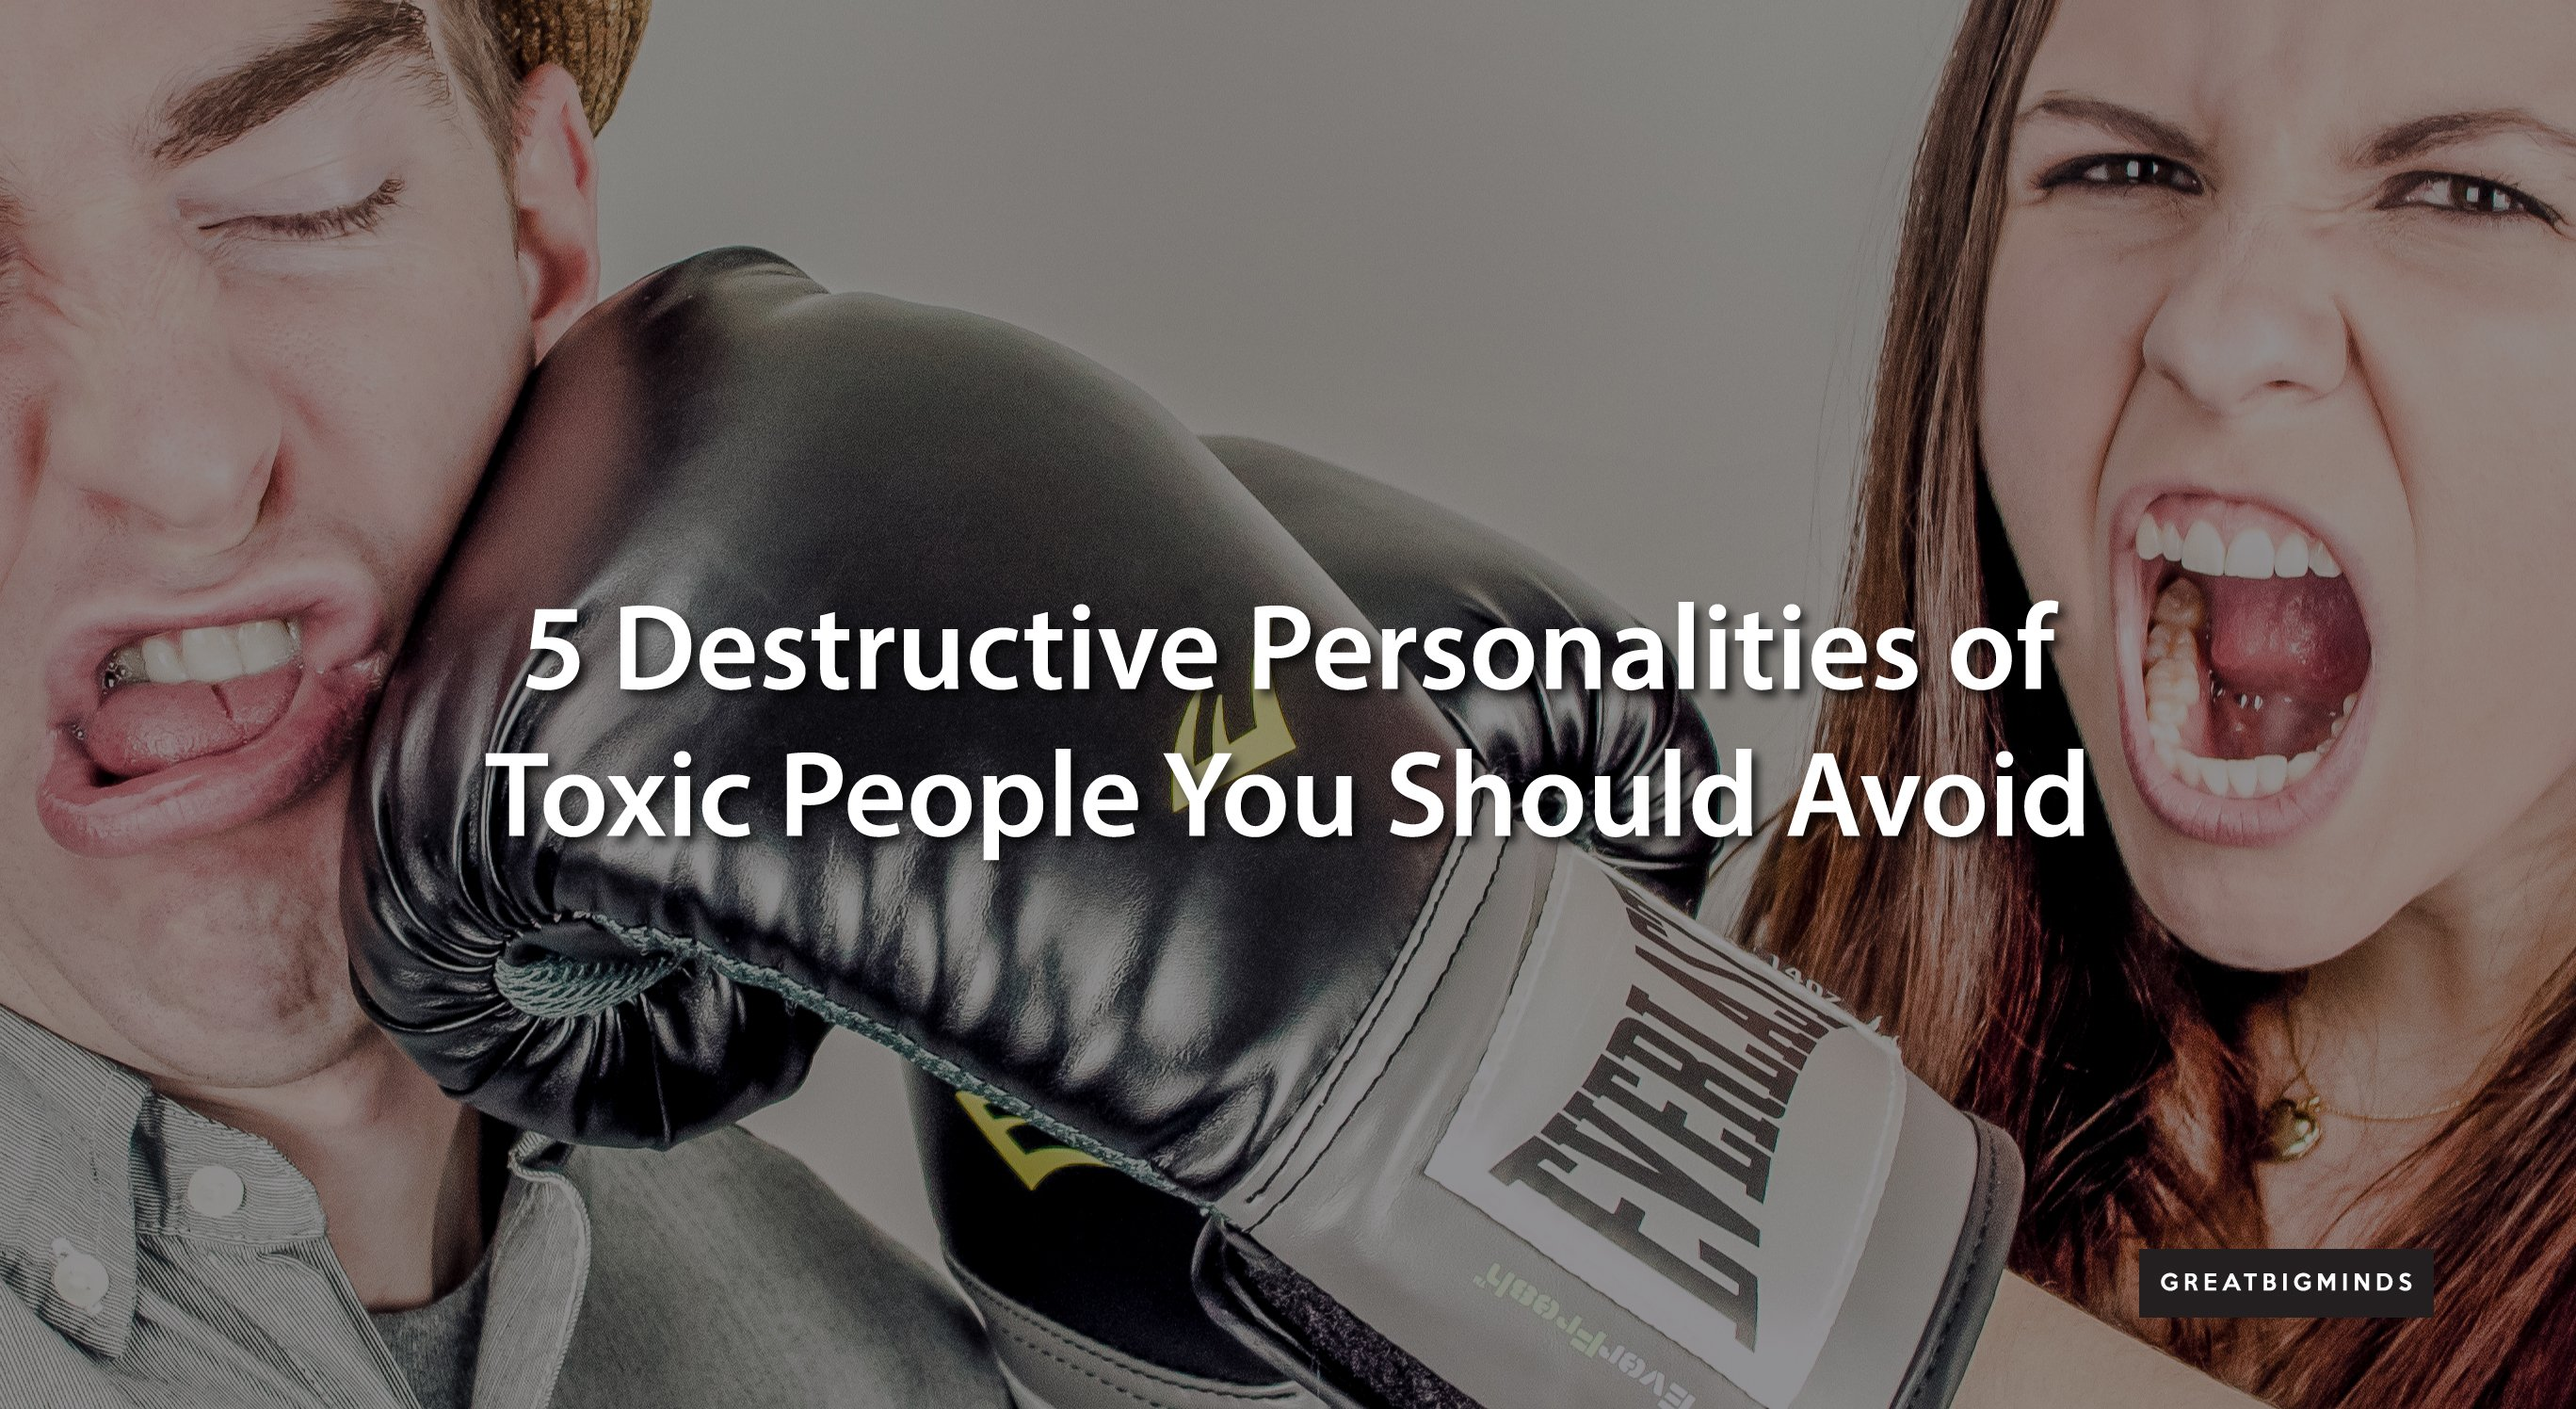 5 Destructive Personalities of Toxic People You Should Avoid